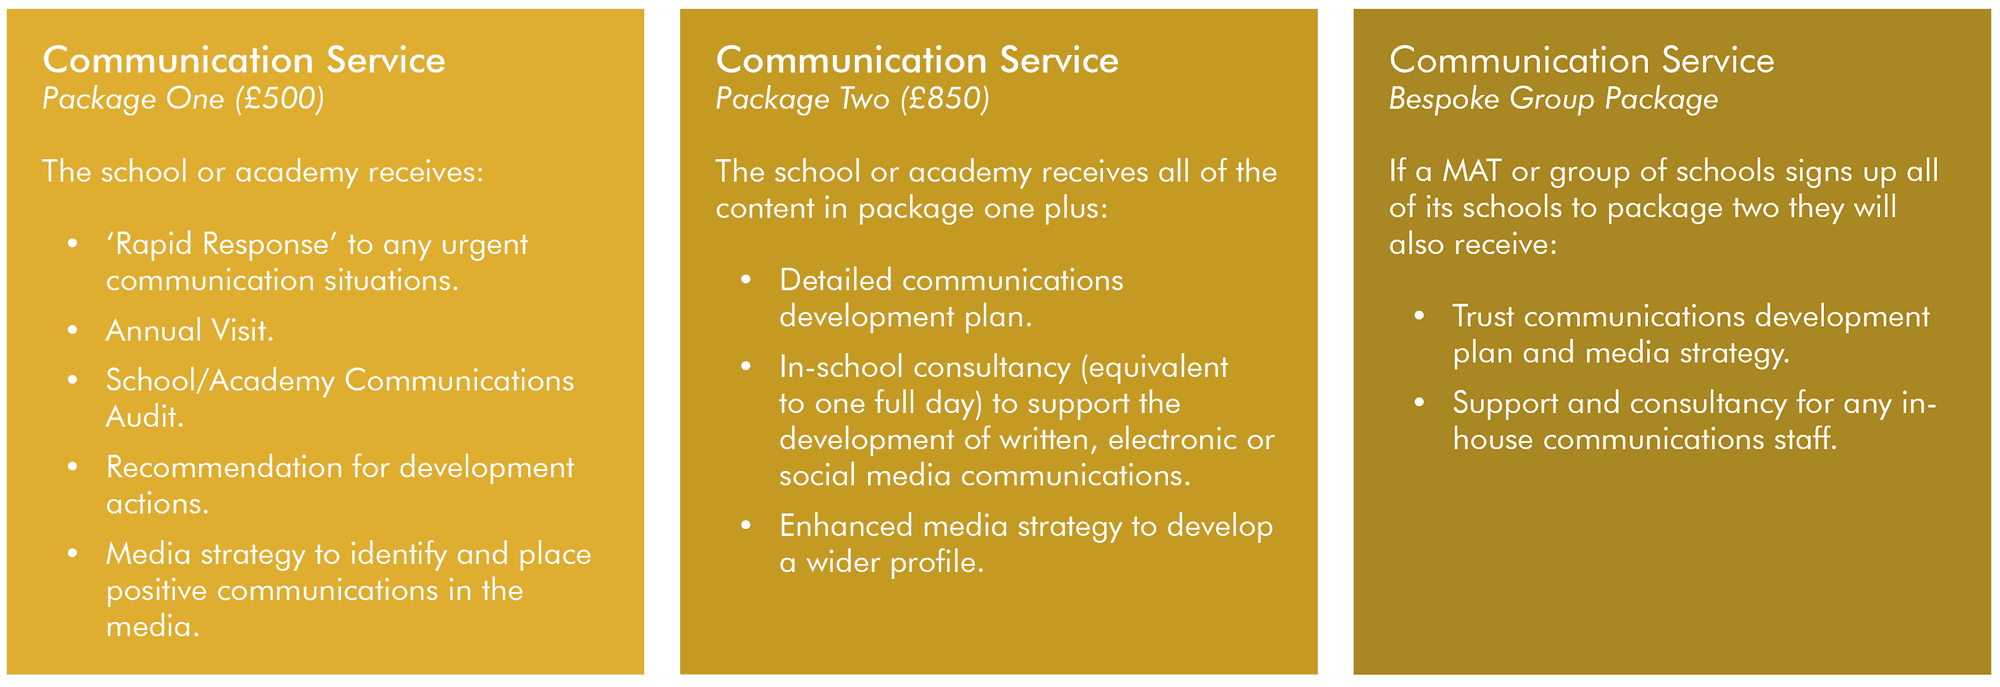 Communications Service